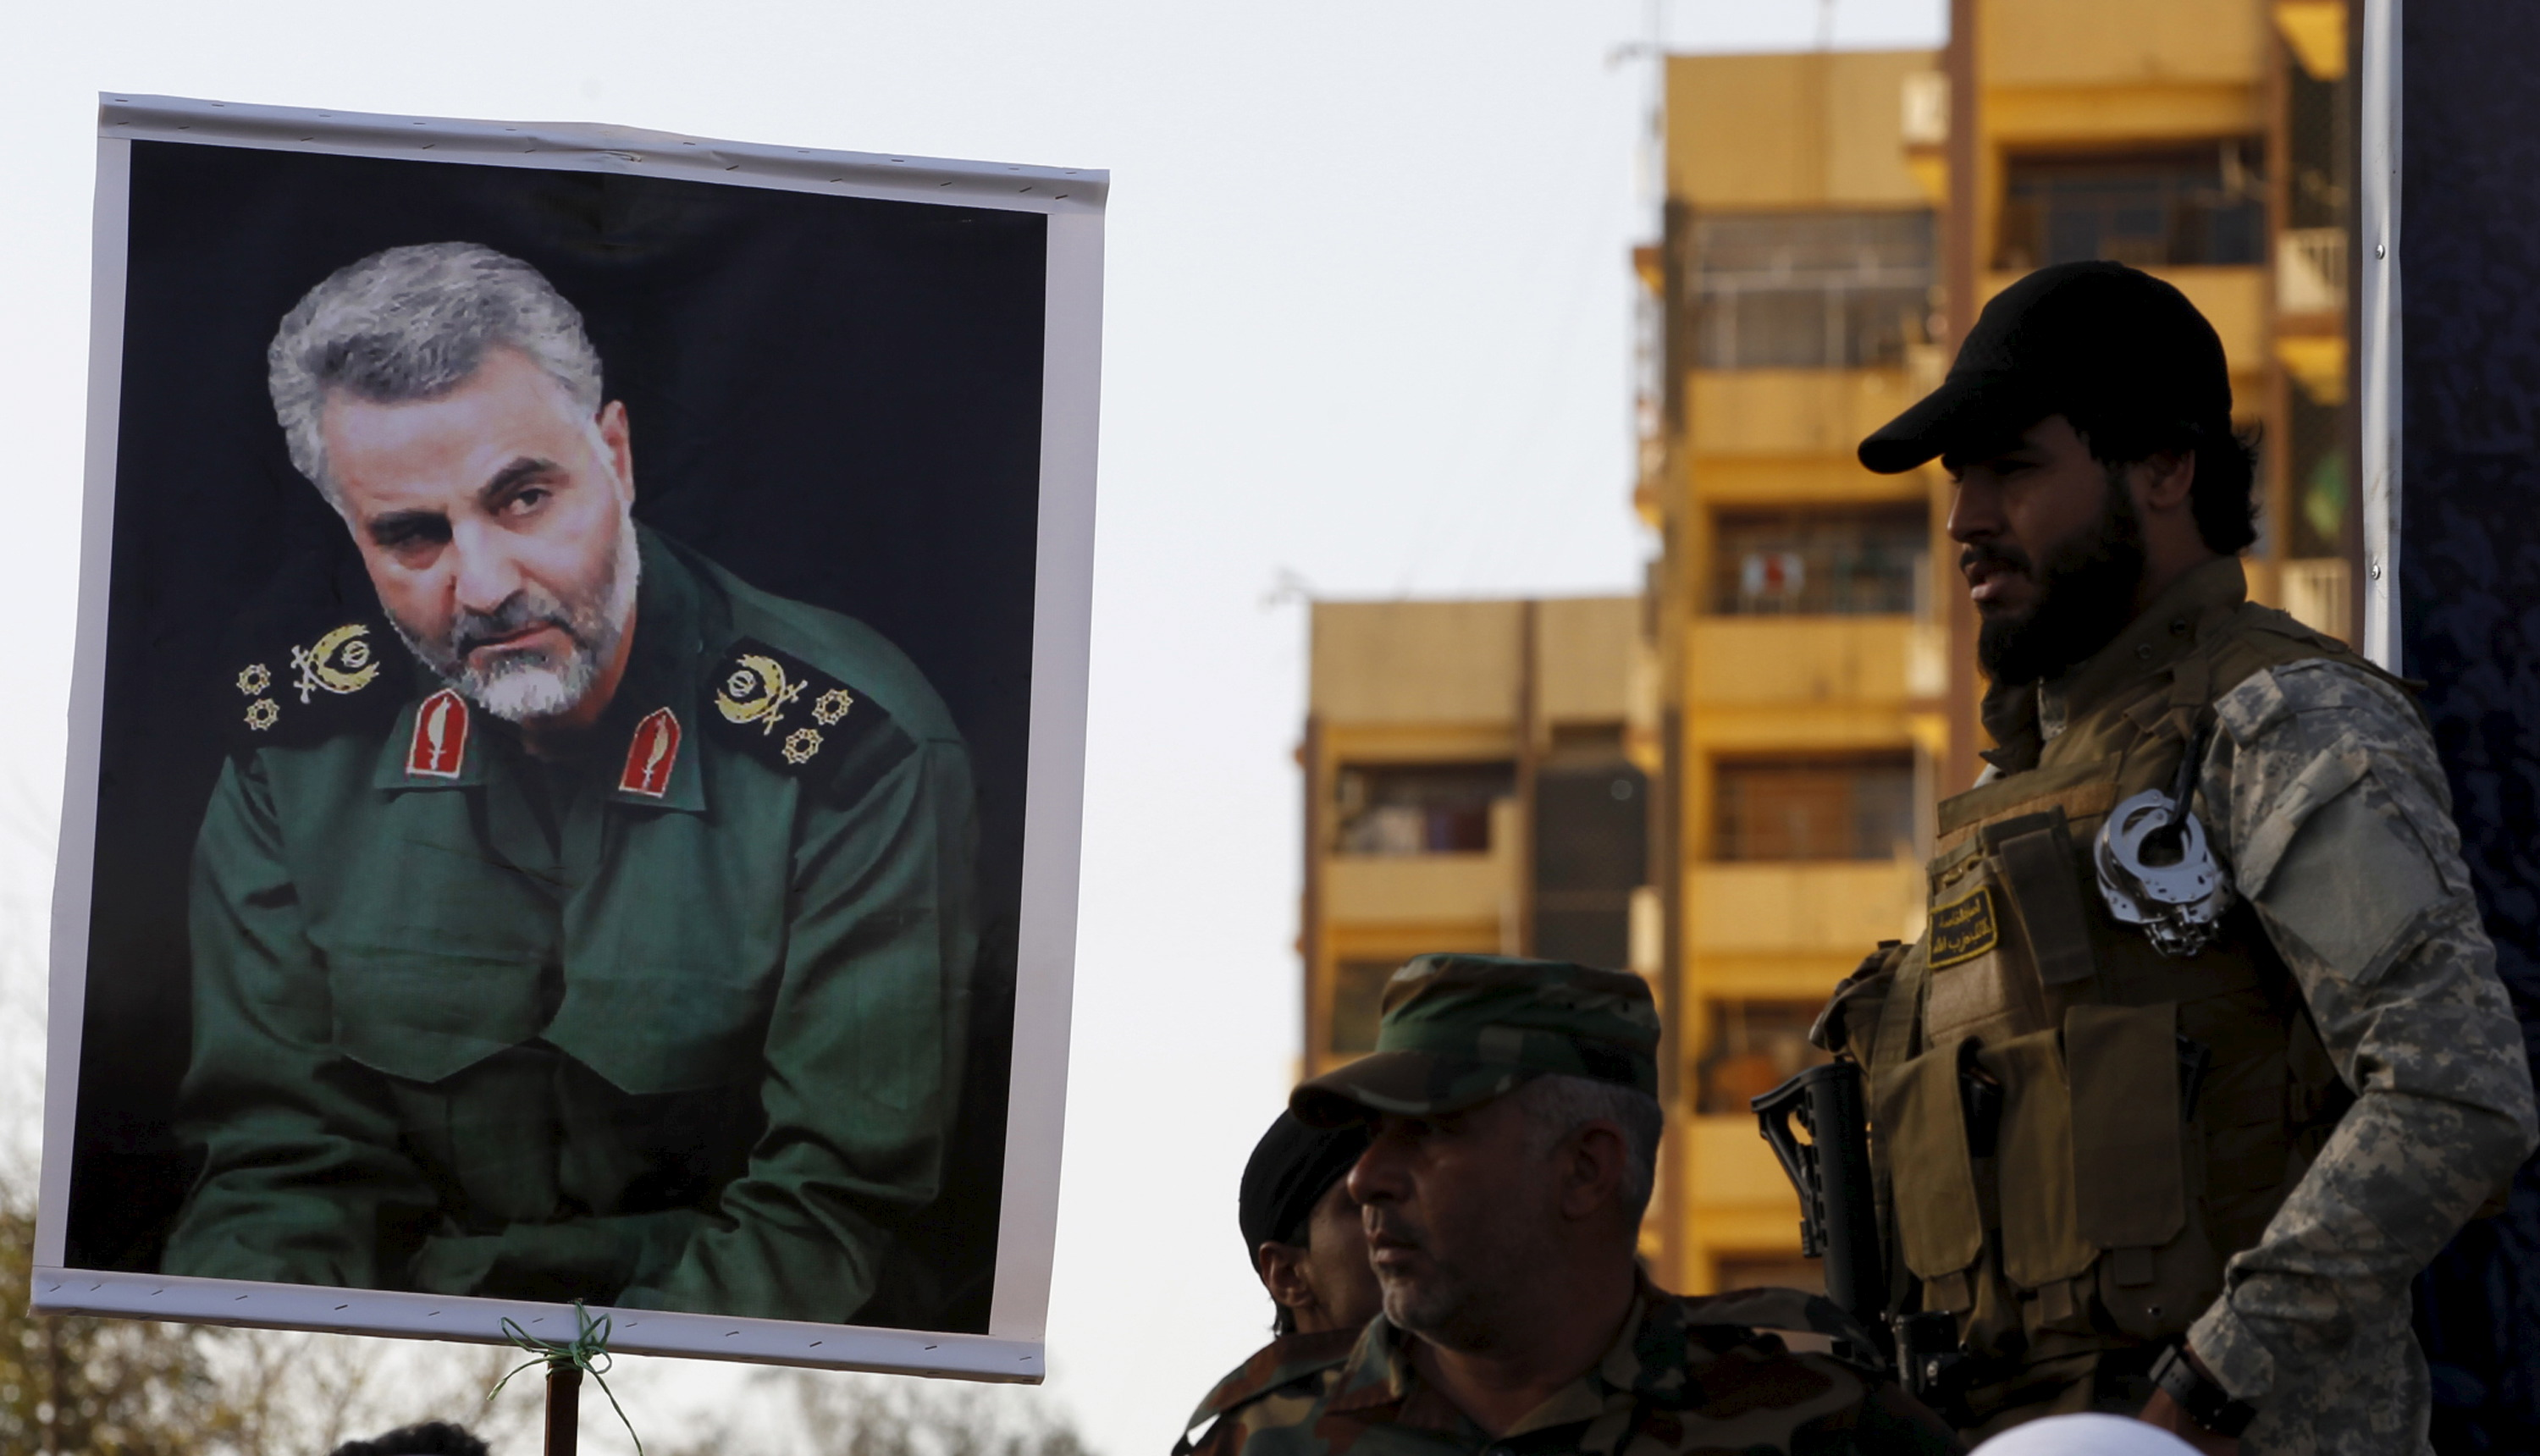 Members from Hashid Shaabi hold a portrait of Quds Force Commander Major General Qassem Suleimani during a demonstration in Baghdad to show support for Yemen's Shi'ite Houthis and in protest of the Saudi-led air campaign in Yemen .